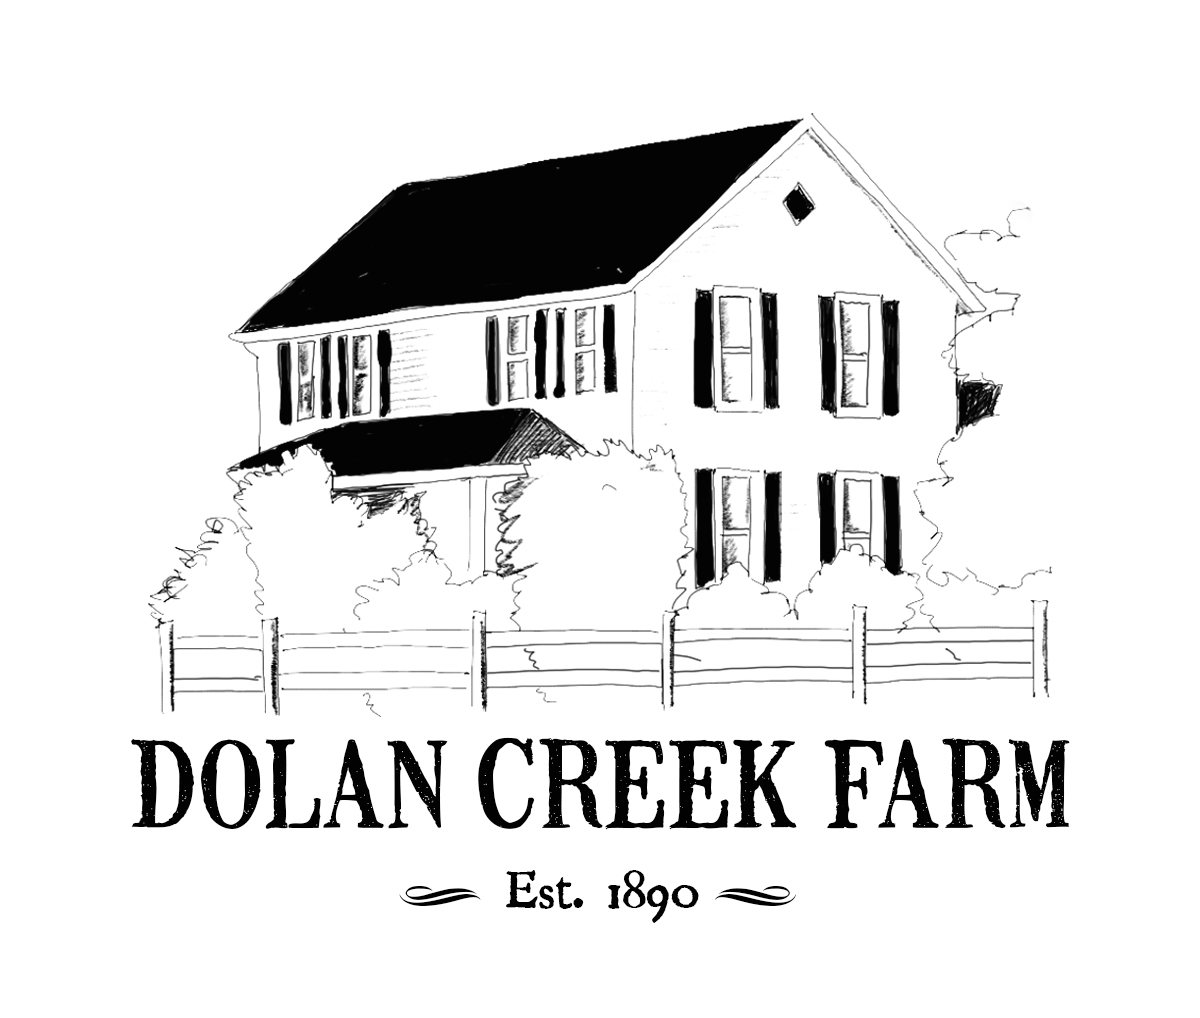 DOLAN CREEK FARM LOGO.jpg